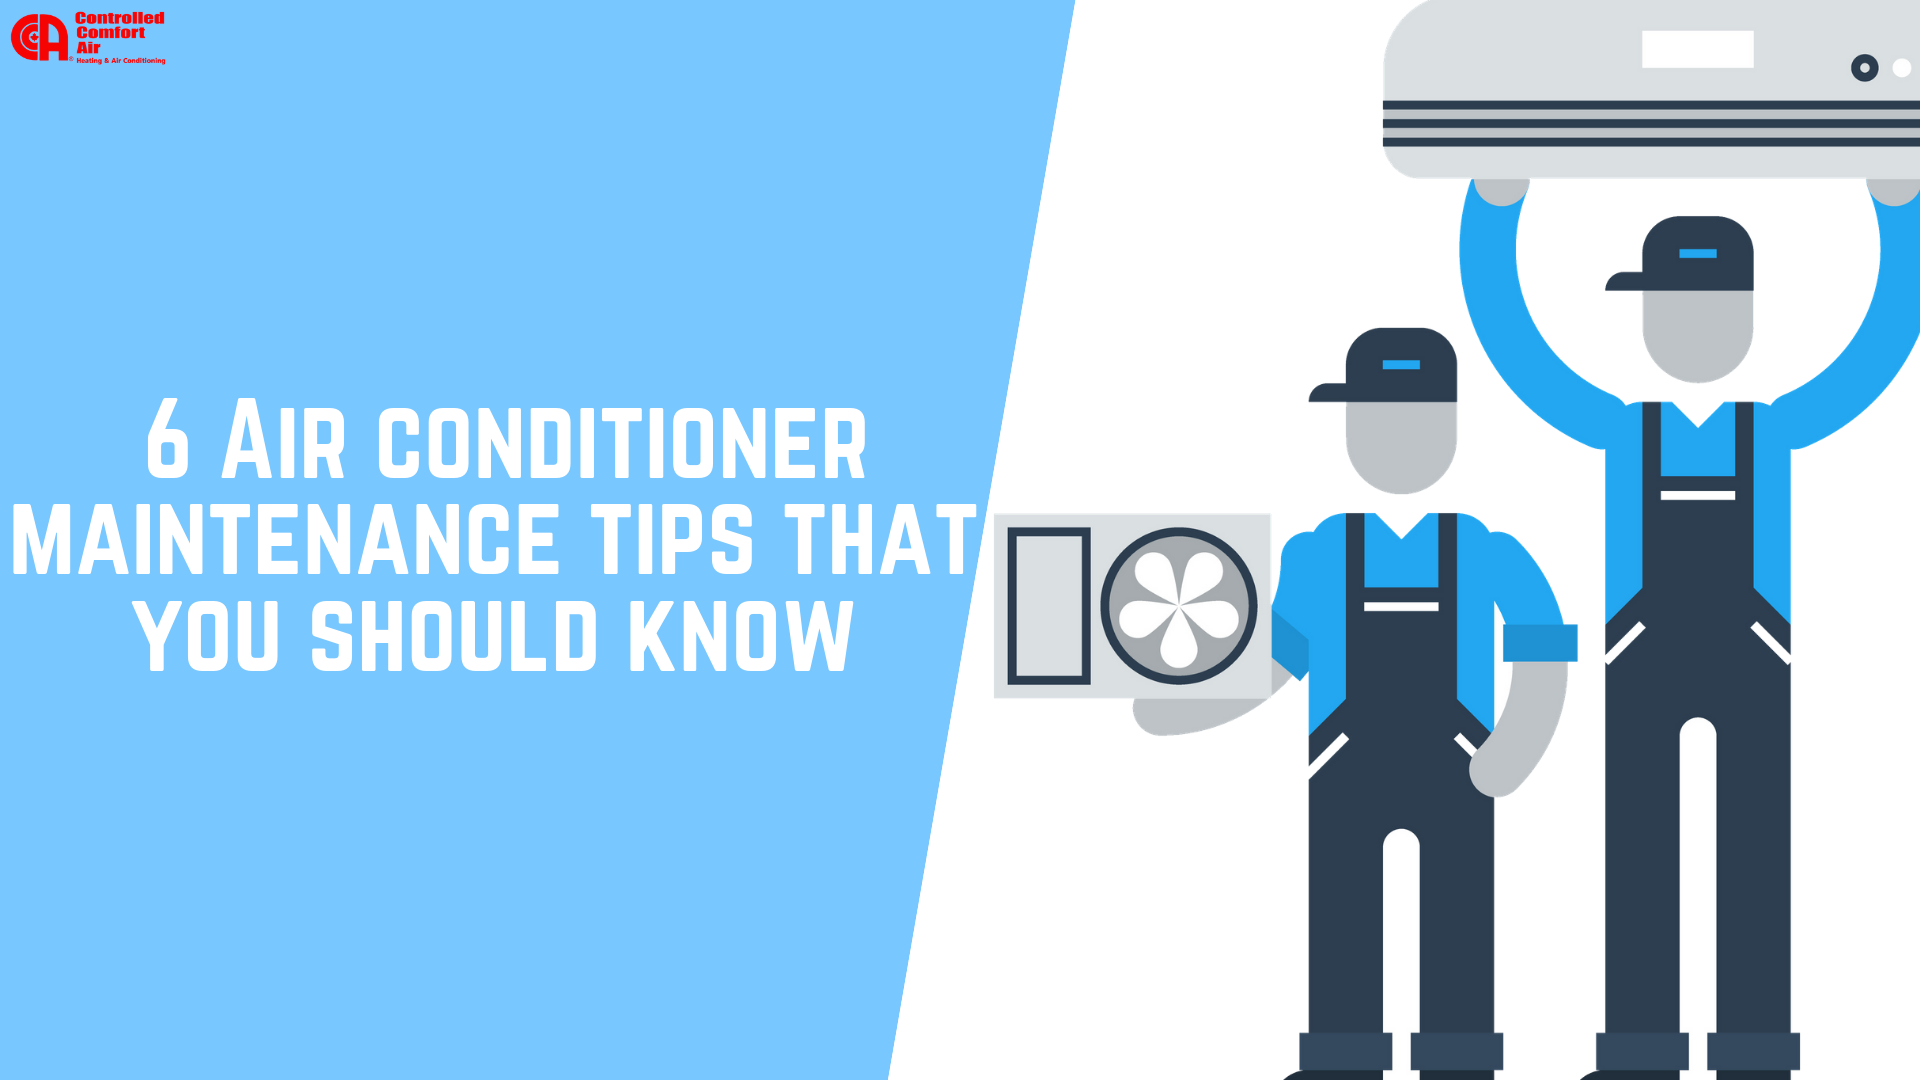 6 Air Conditioner Maintenance Tips You Should Know